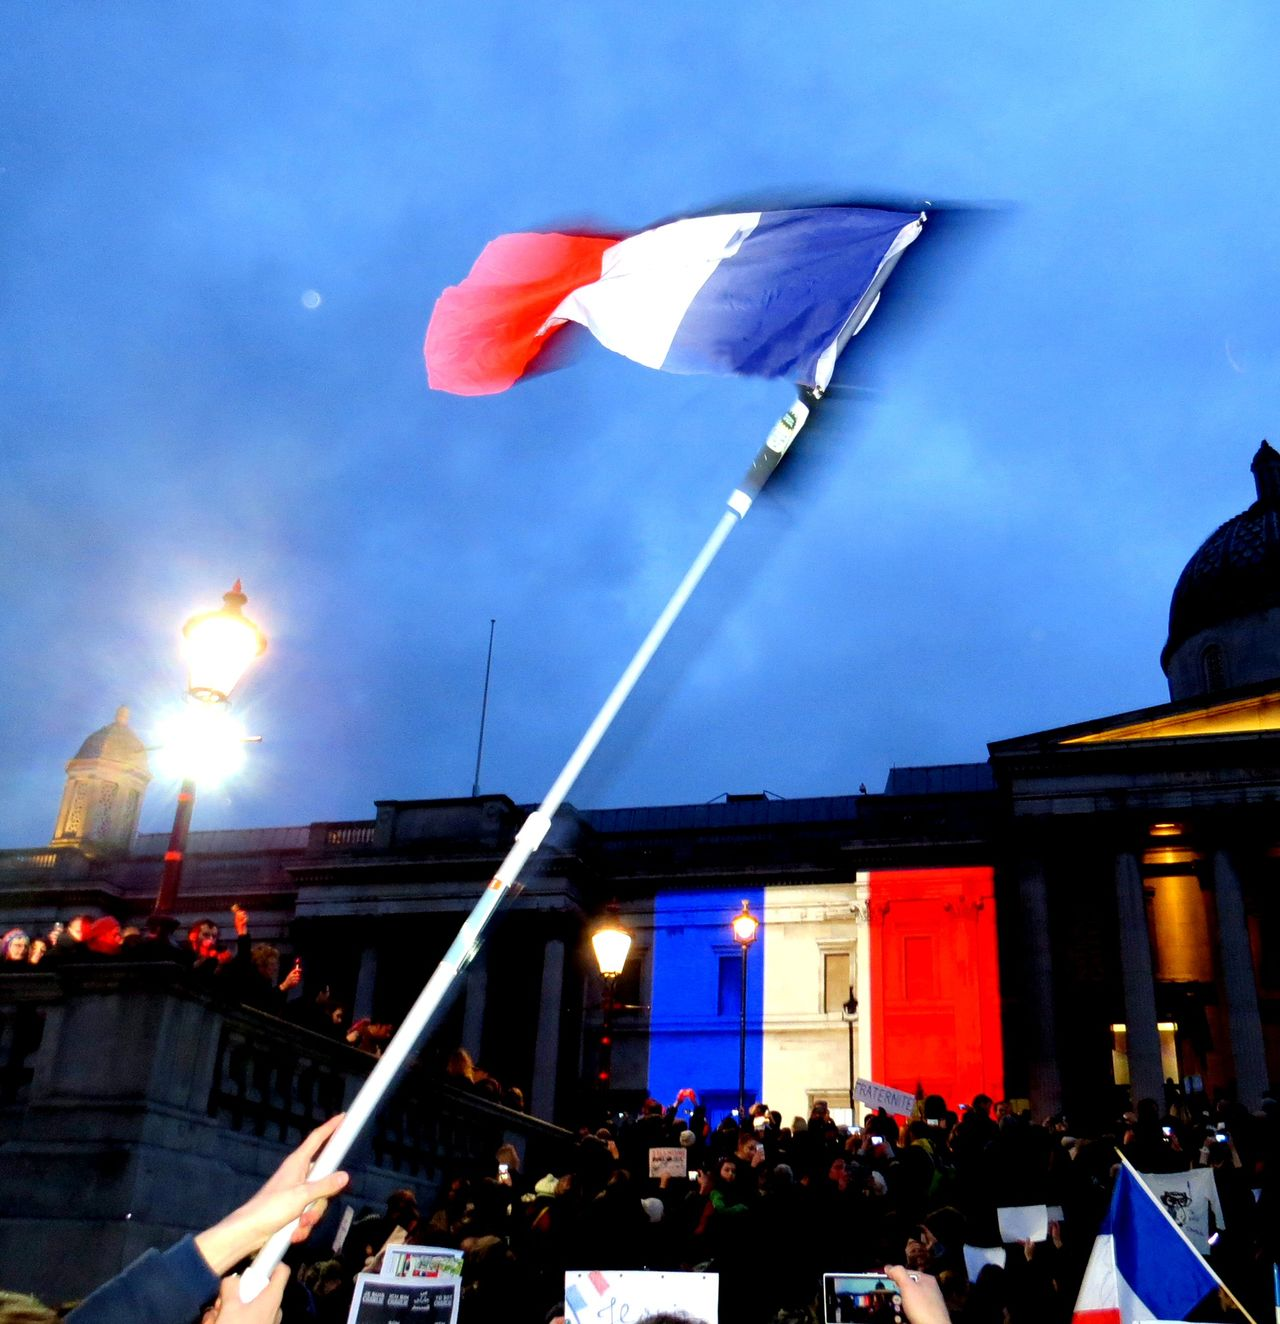 Election Europe European Union France French Elections French Flag La France Le Tricolor Red White And Blue Waving A Flag